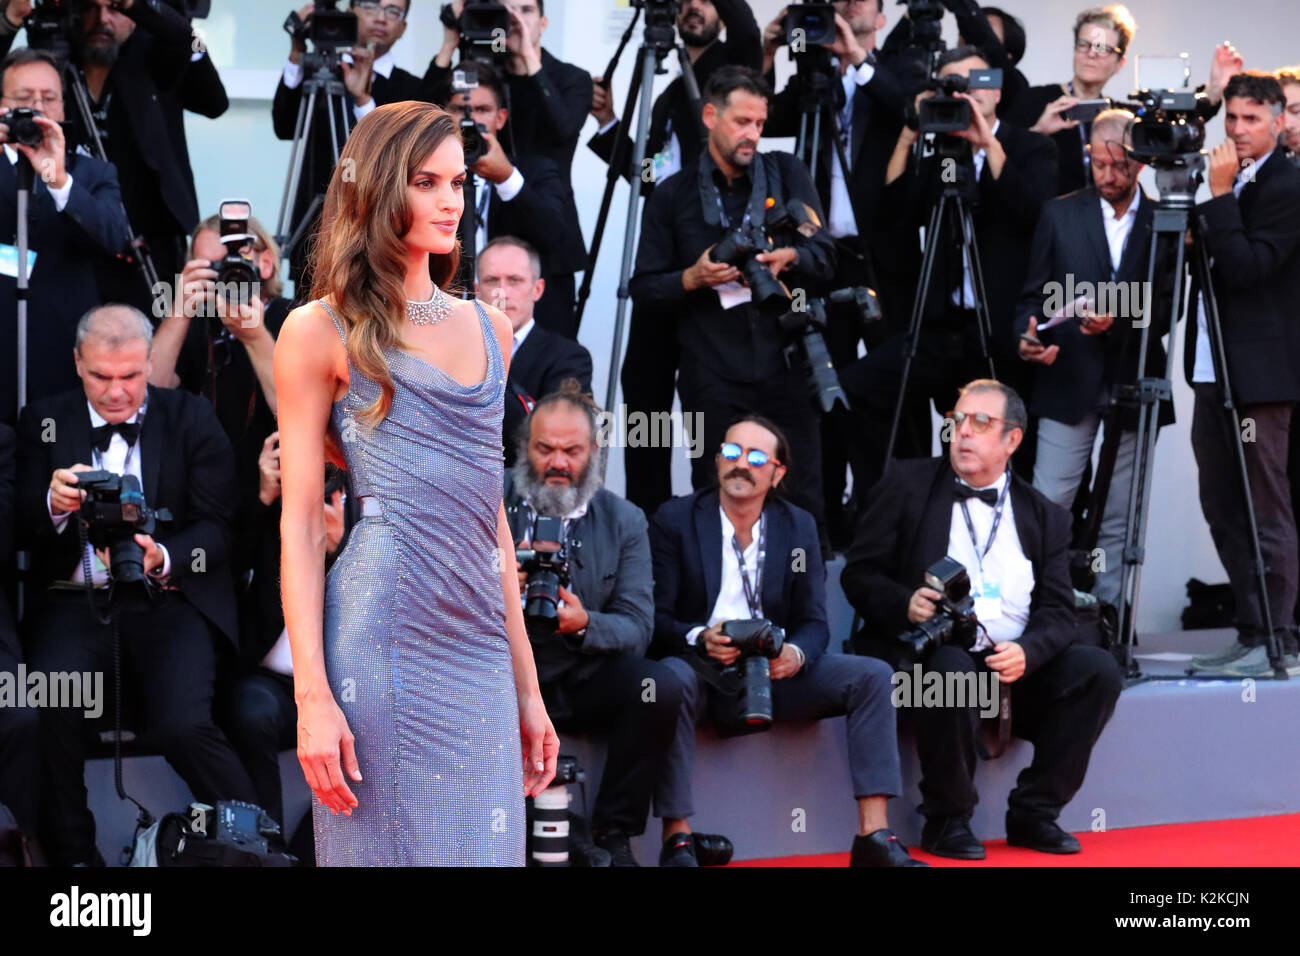 Venice, Italy. 30th Aug, 2017. VENICE, ITALY - AUGUST 30: Izabel Goulart walks the red carpet ahead of the 'Downsizing' screening and Opening Ceremony during the 74th Venice Film Festival at Sala Grande on August 30, 2017 in Venice, Italy. Credit: Graziano Quaglia/Alamy Live News - Stock Image